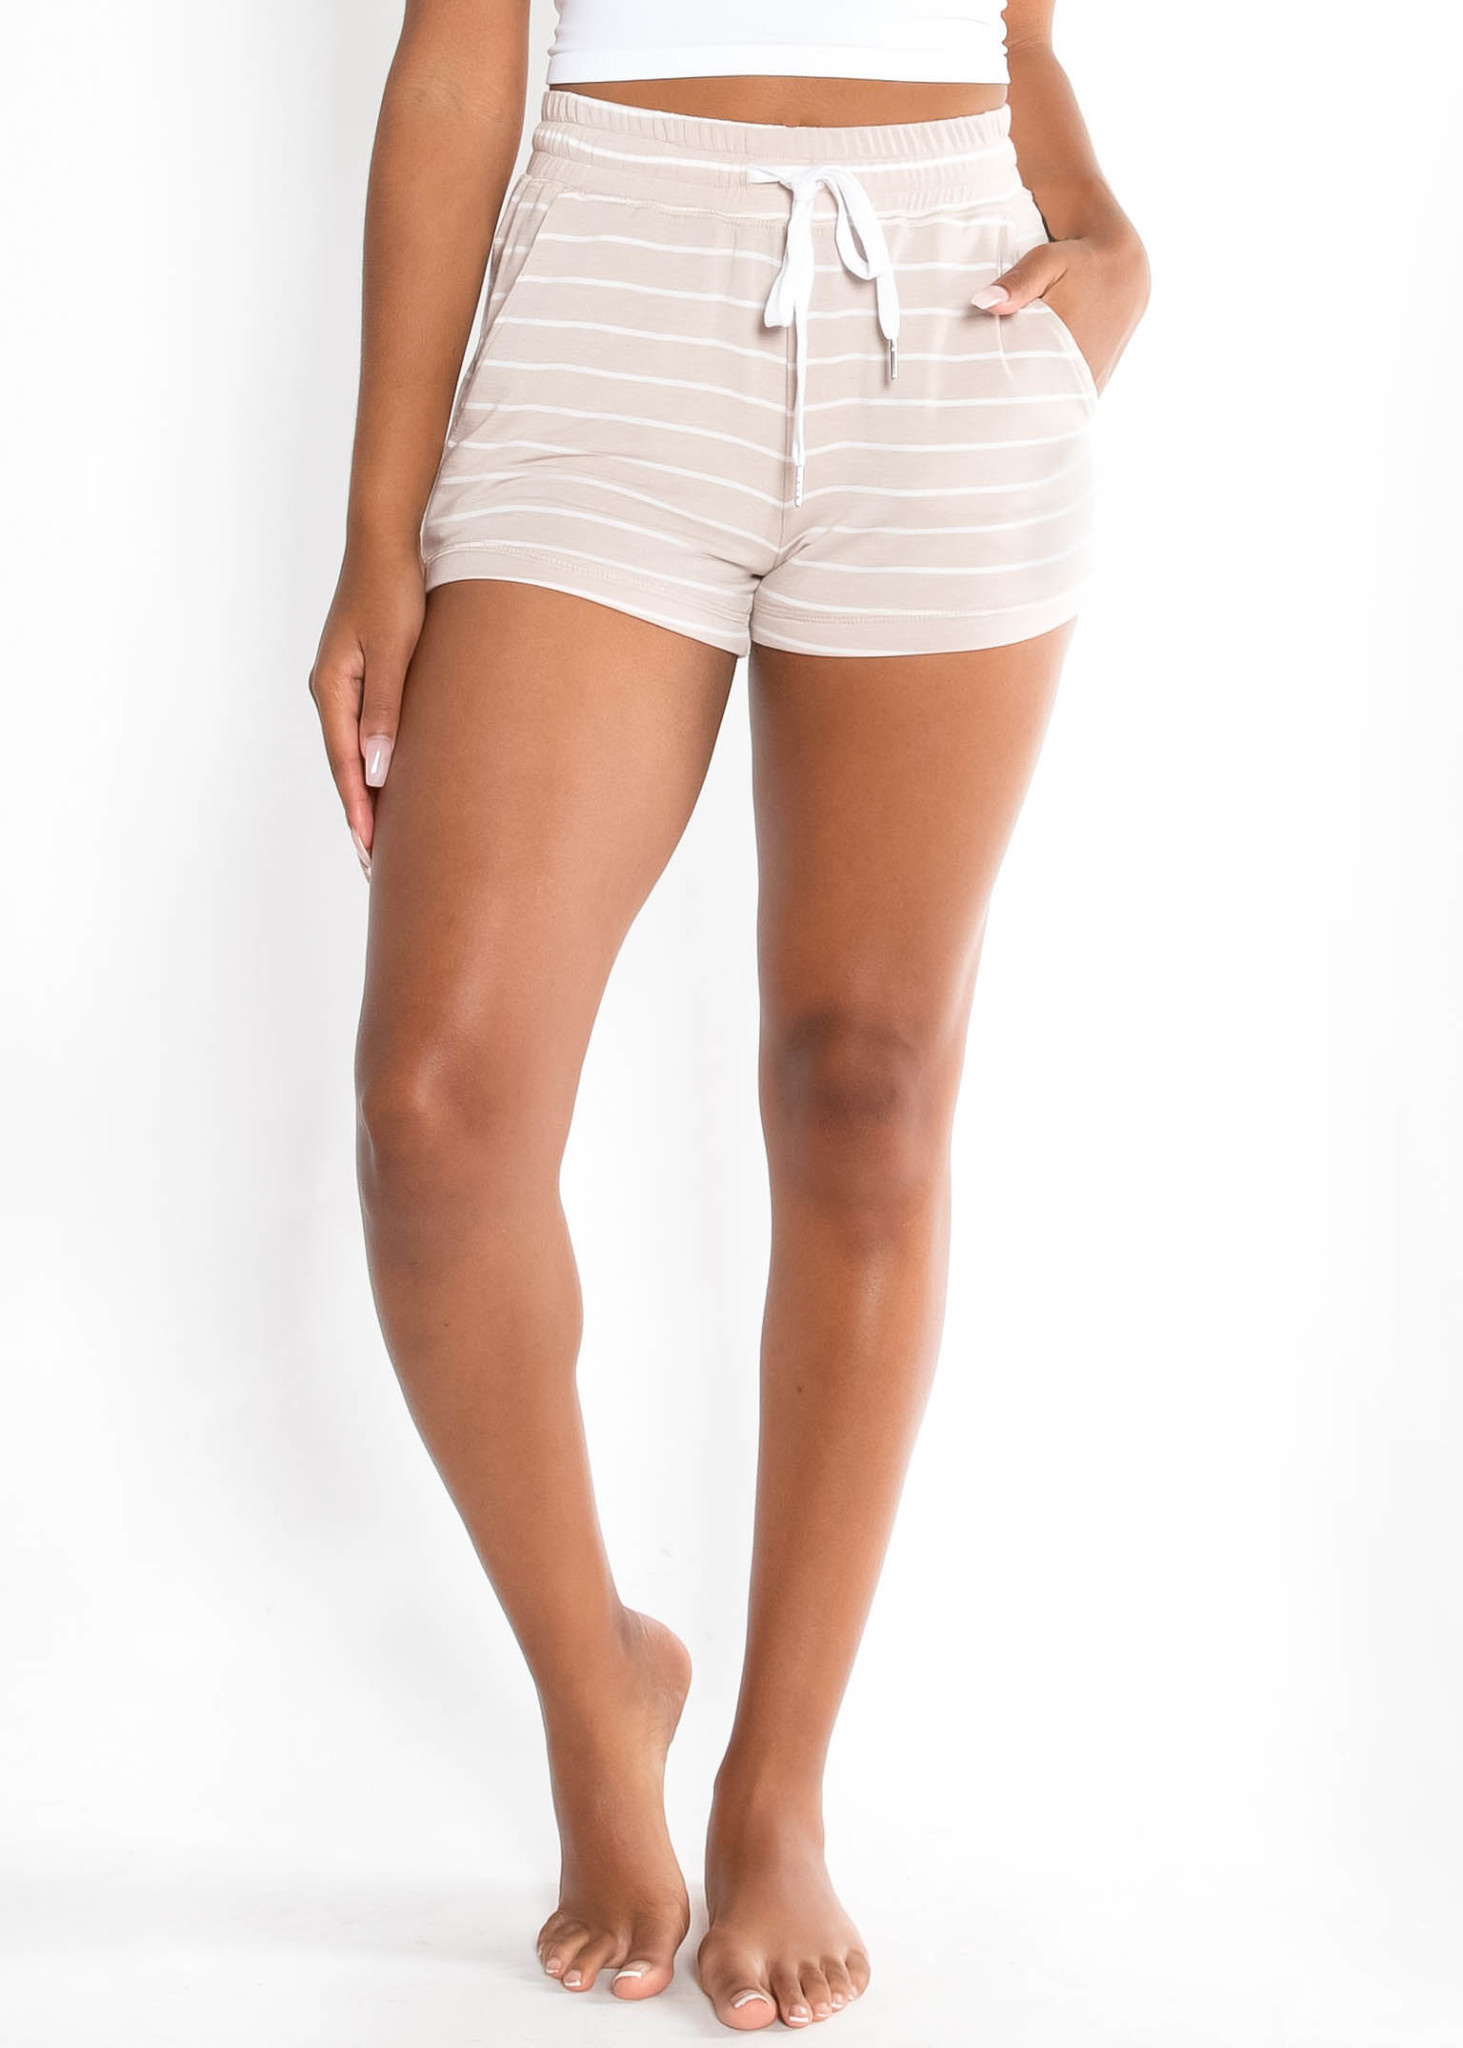 LIFE OF EASE STRIPED SHORTS